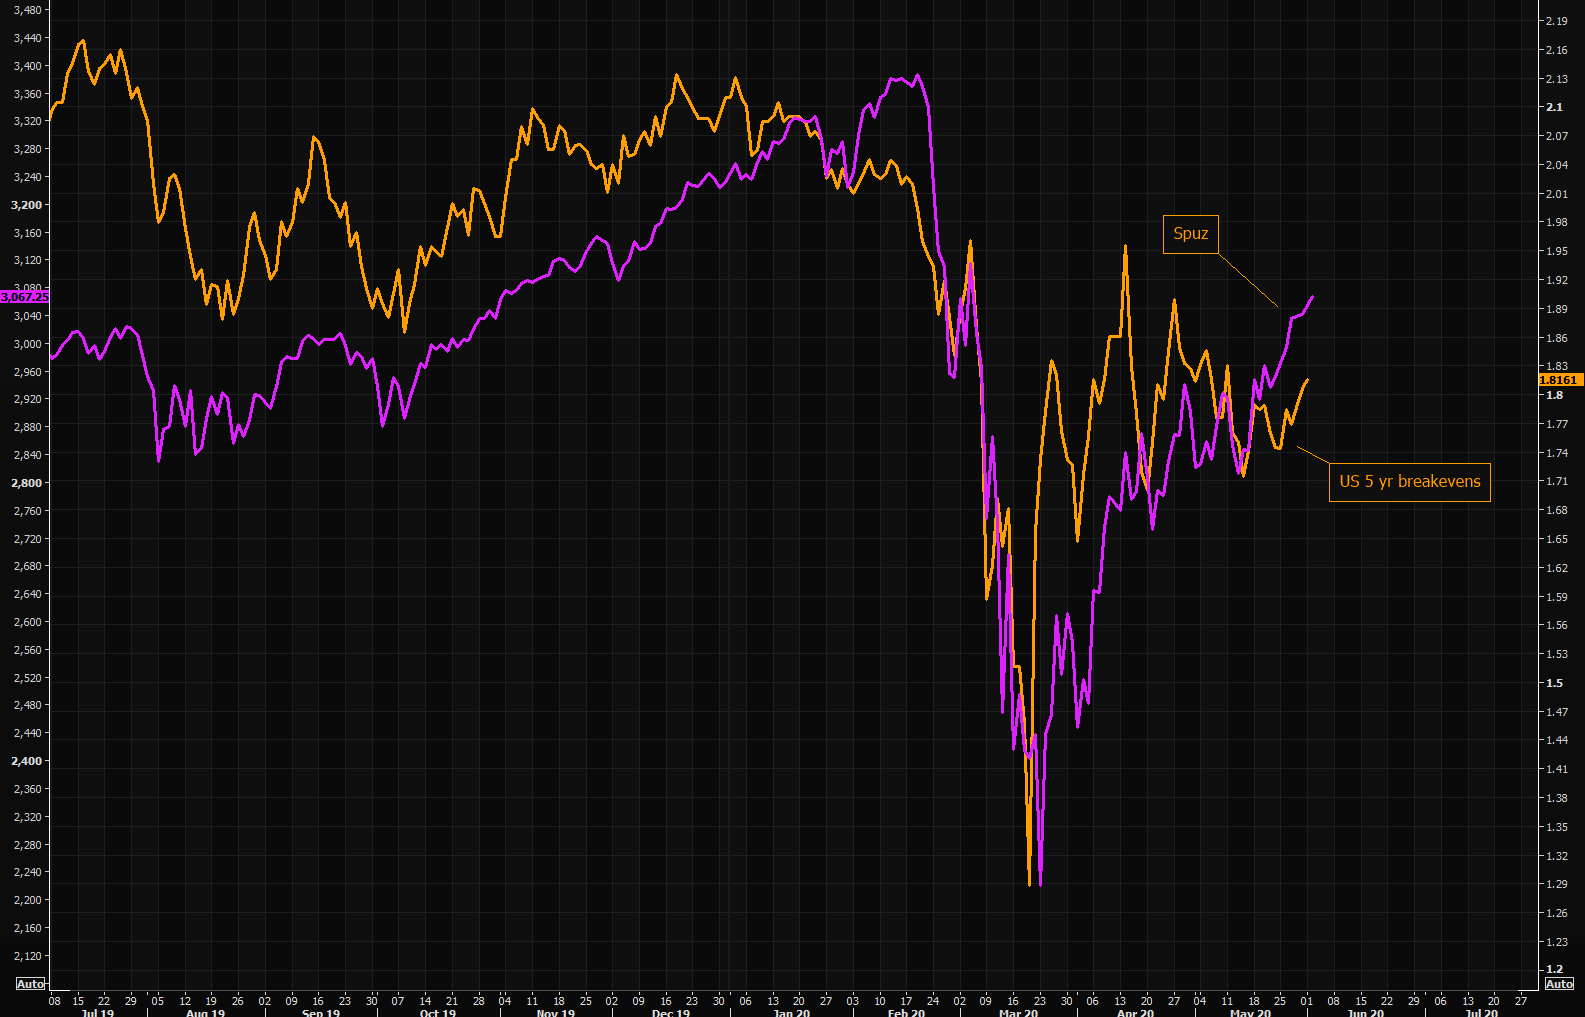 Inflation narrative still driver of equities - US edition